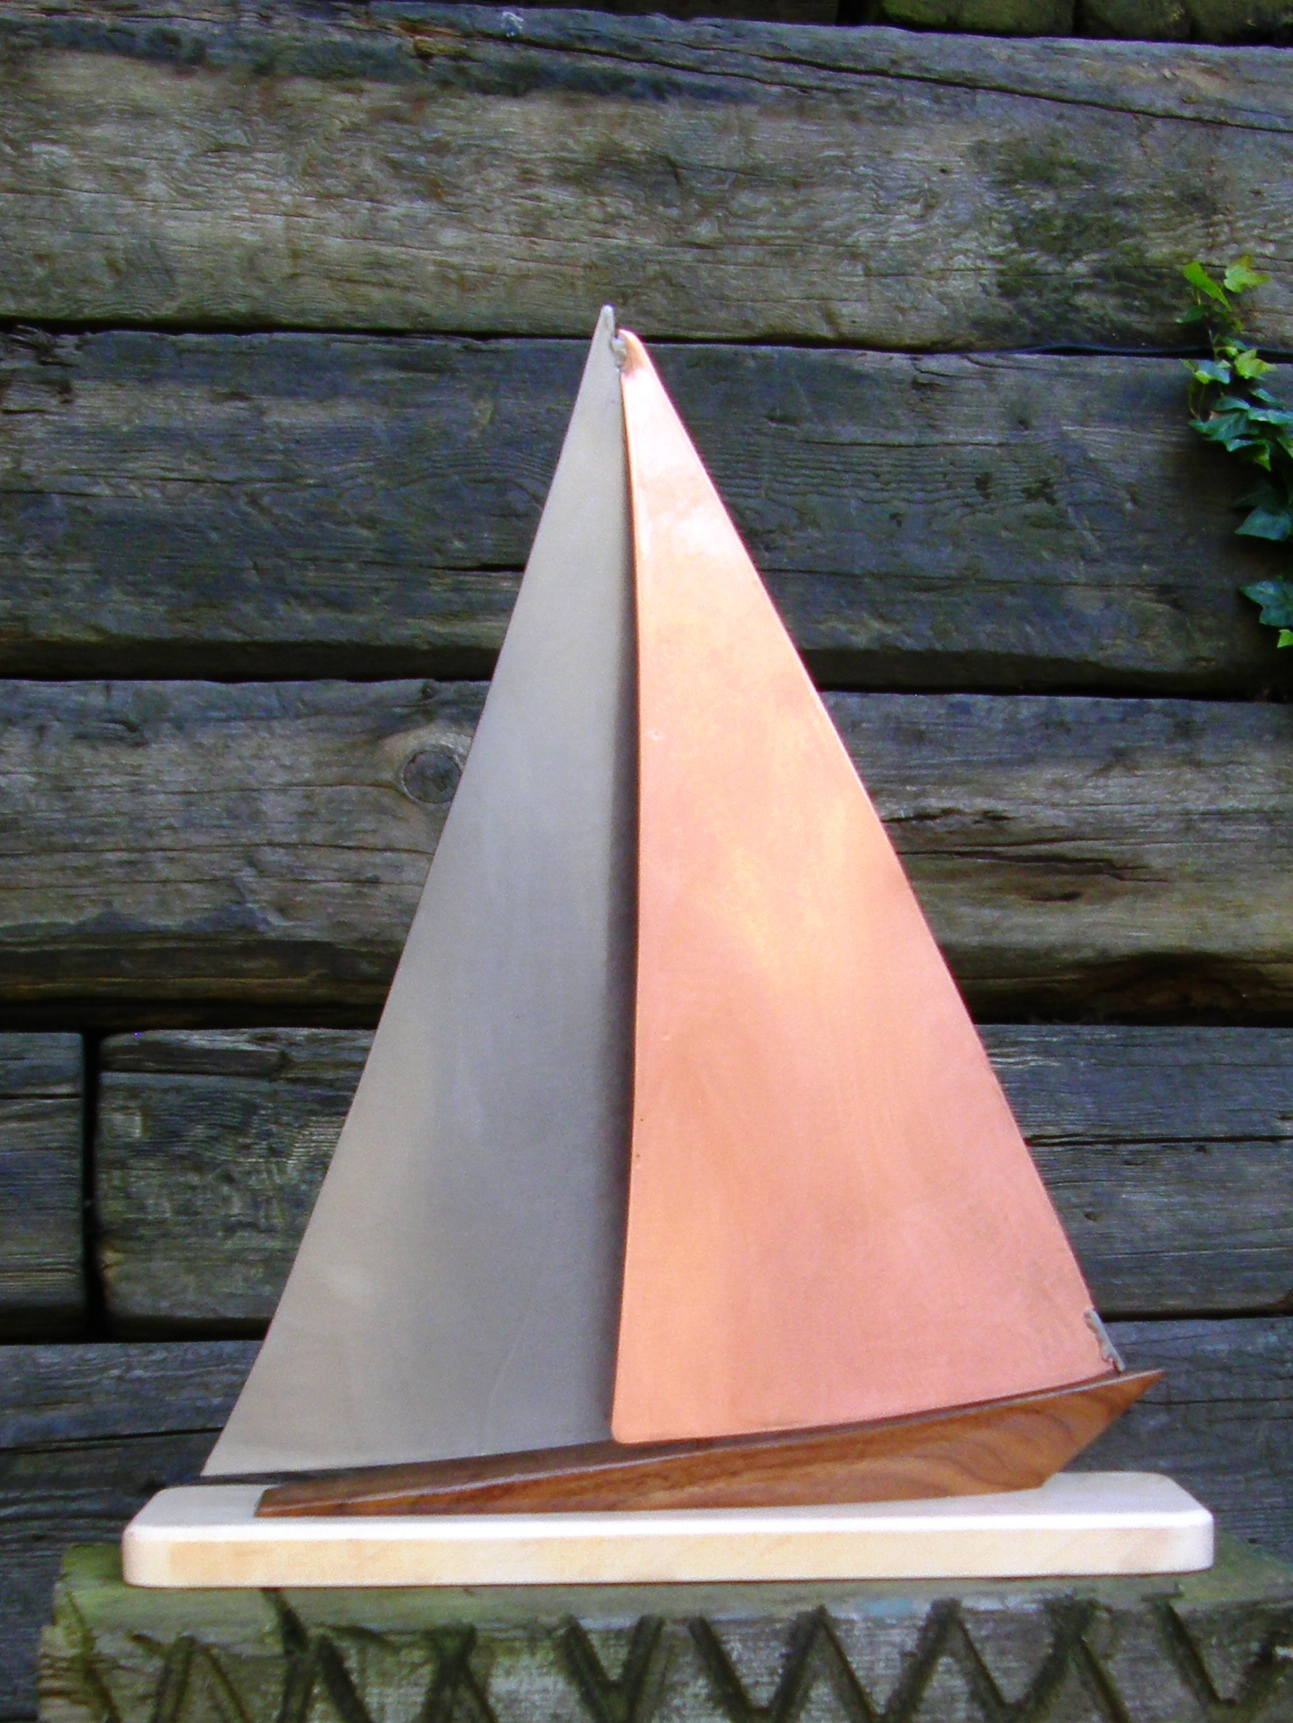 Limited Edition Yacht Model on Port Tack - 460x400mm